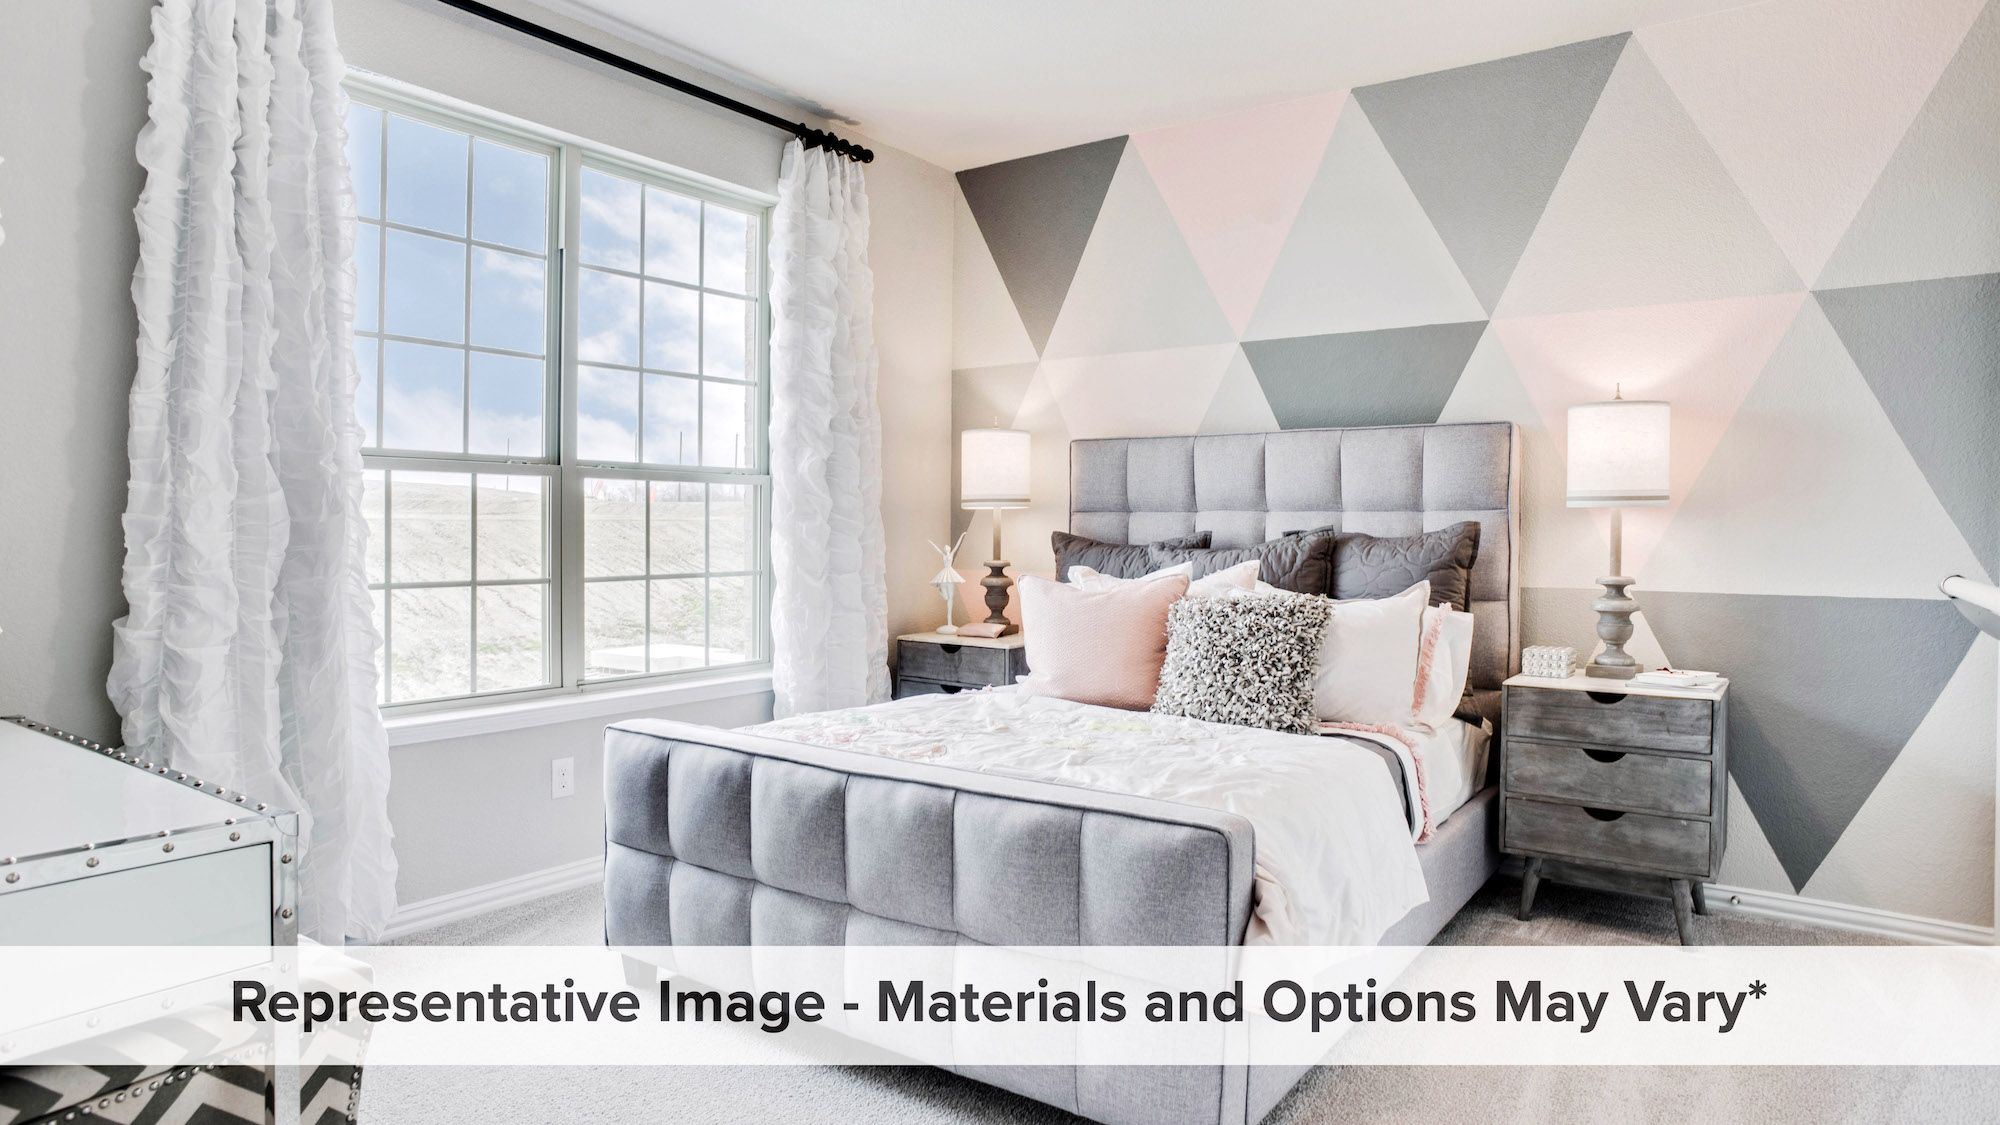 Bedroom featured in the Ironwood By HistoryMaker Homes    in Dallas, TX